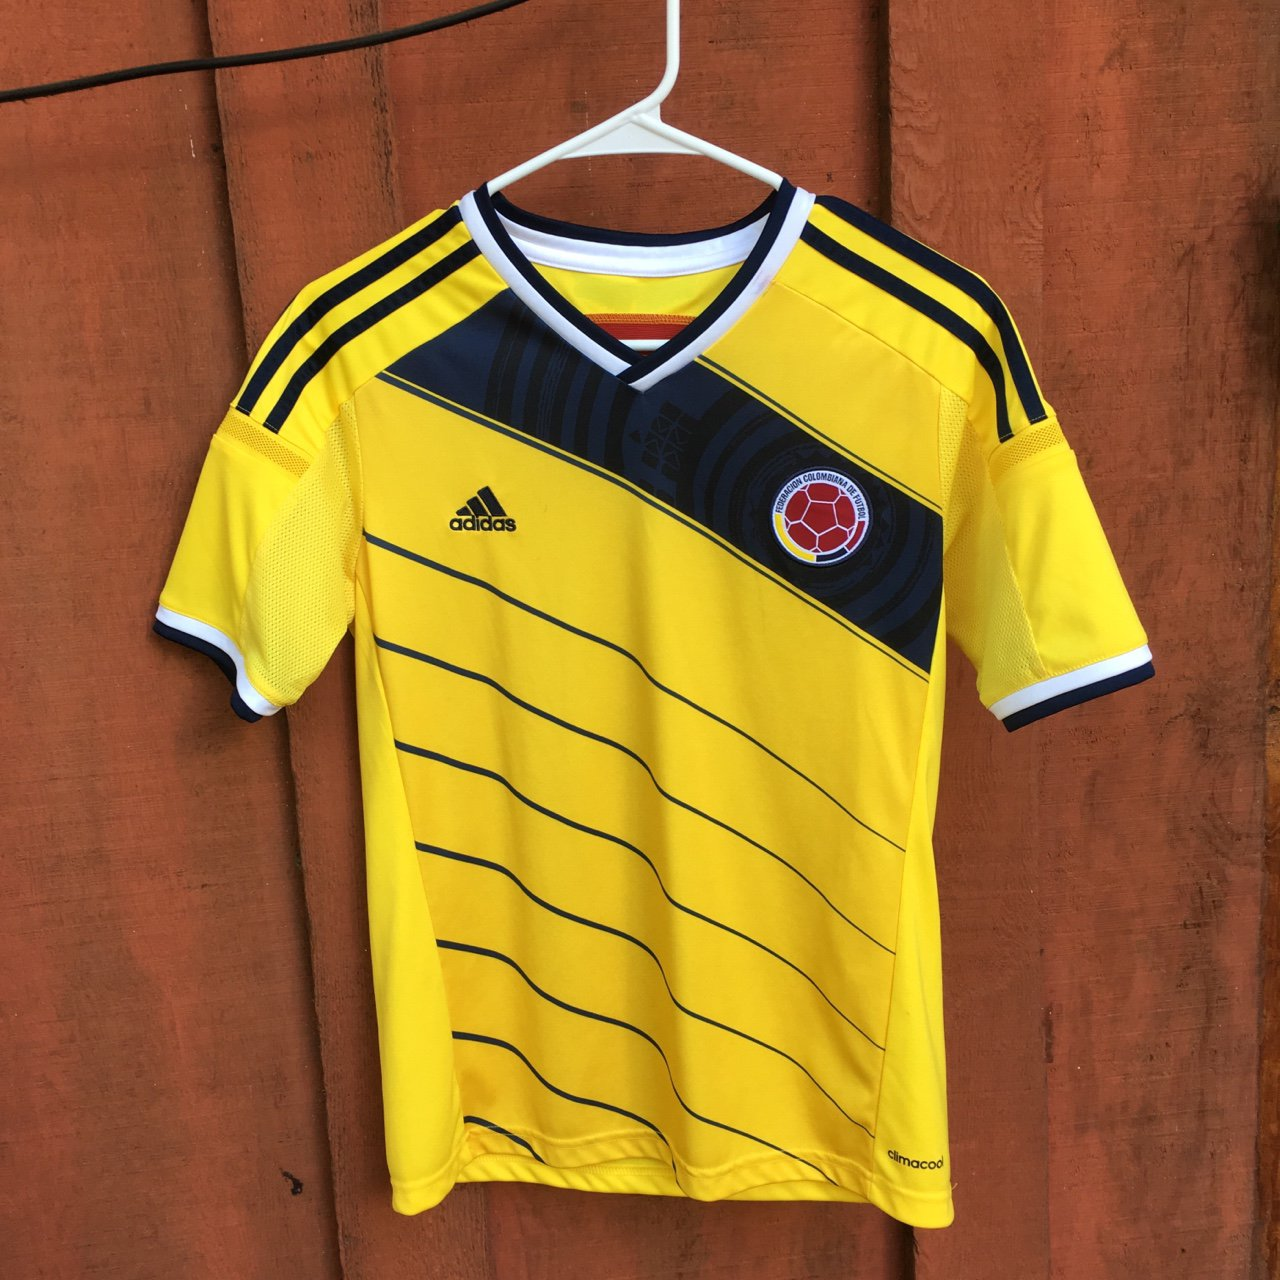 Real Replica 2014 Colombia World Cup Jersey by Adidas 🇨🇴 L - Depop 0d84741b6